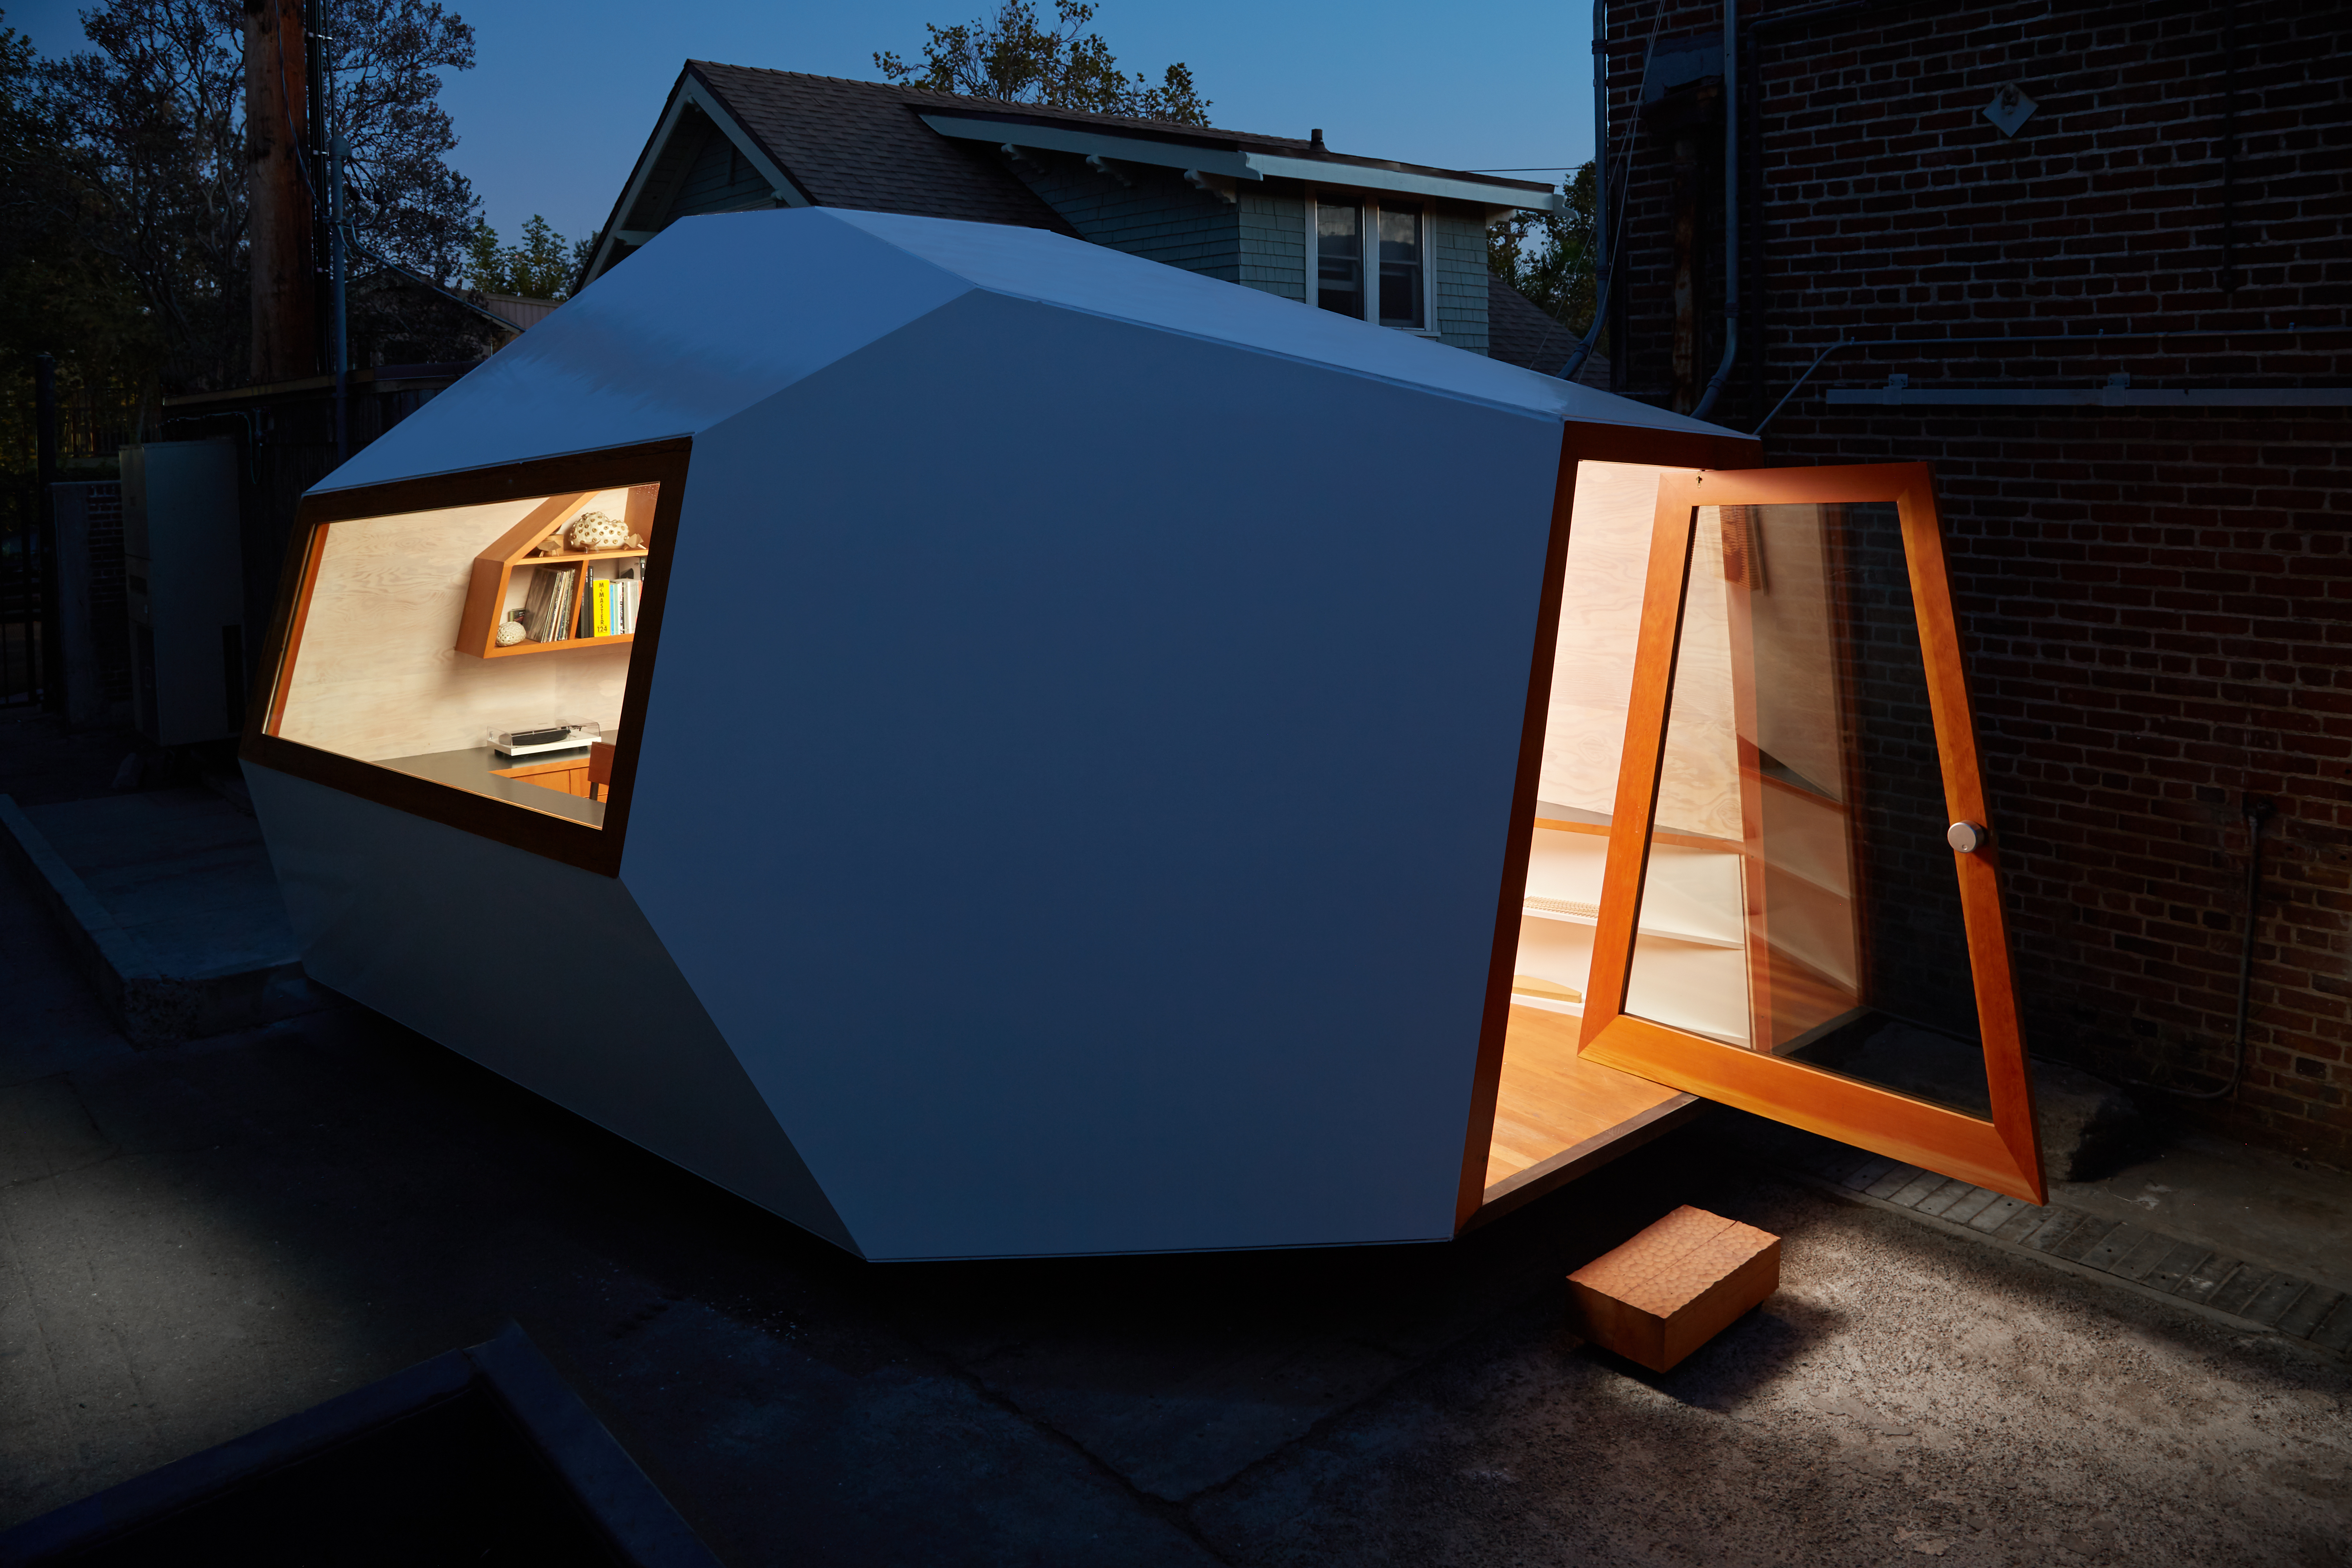 Tiny moveable office packs spacious design in small package